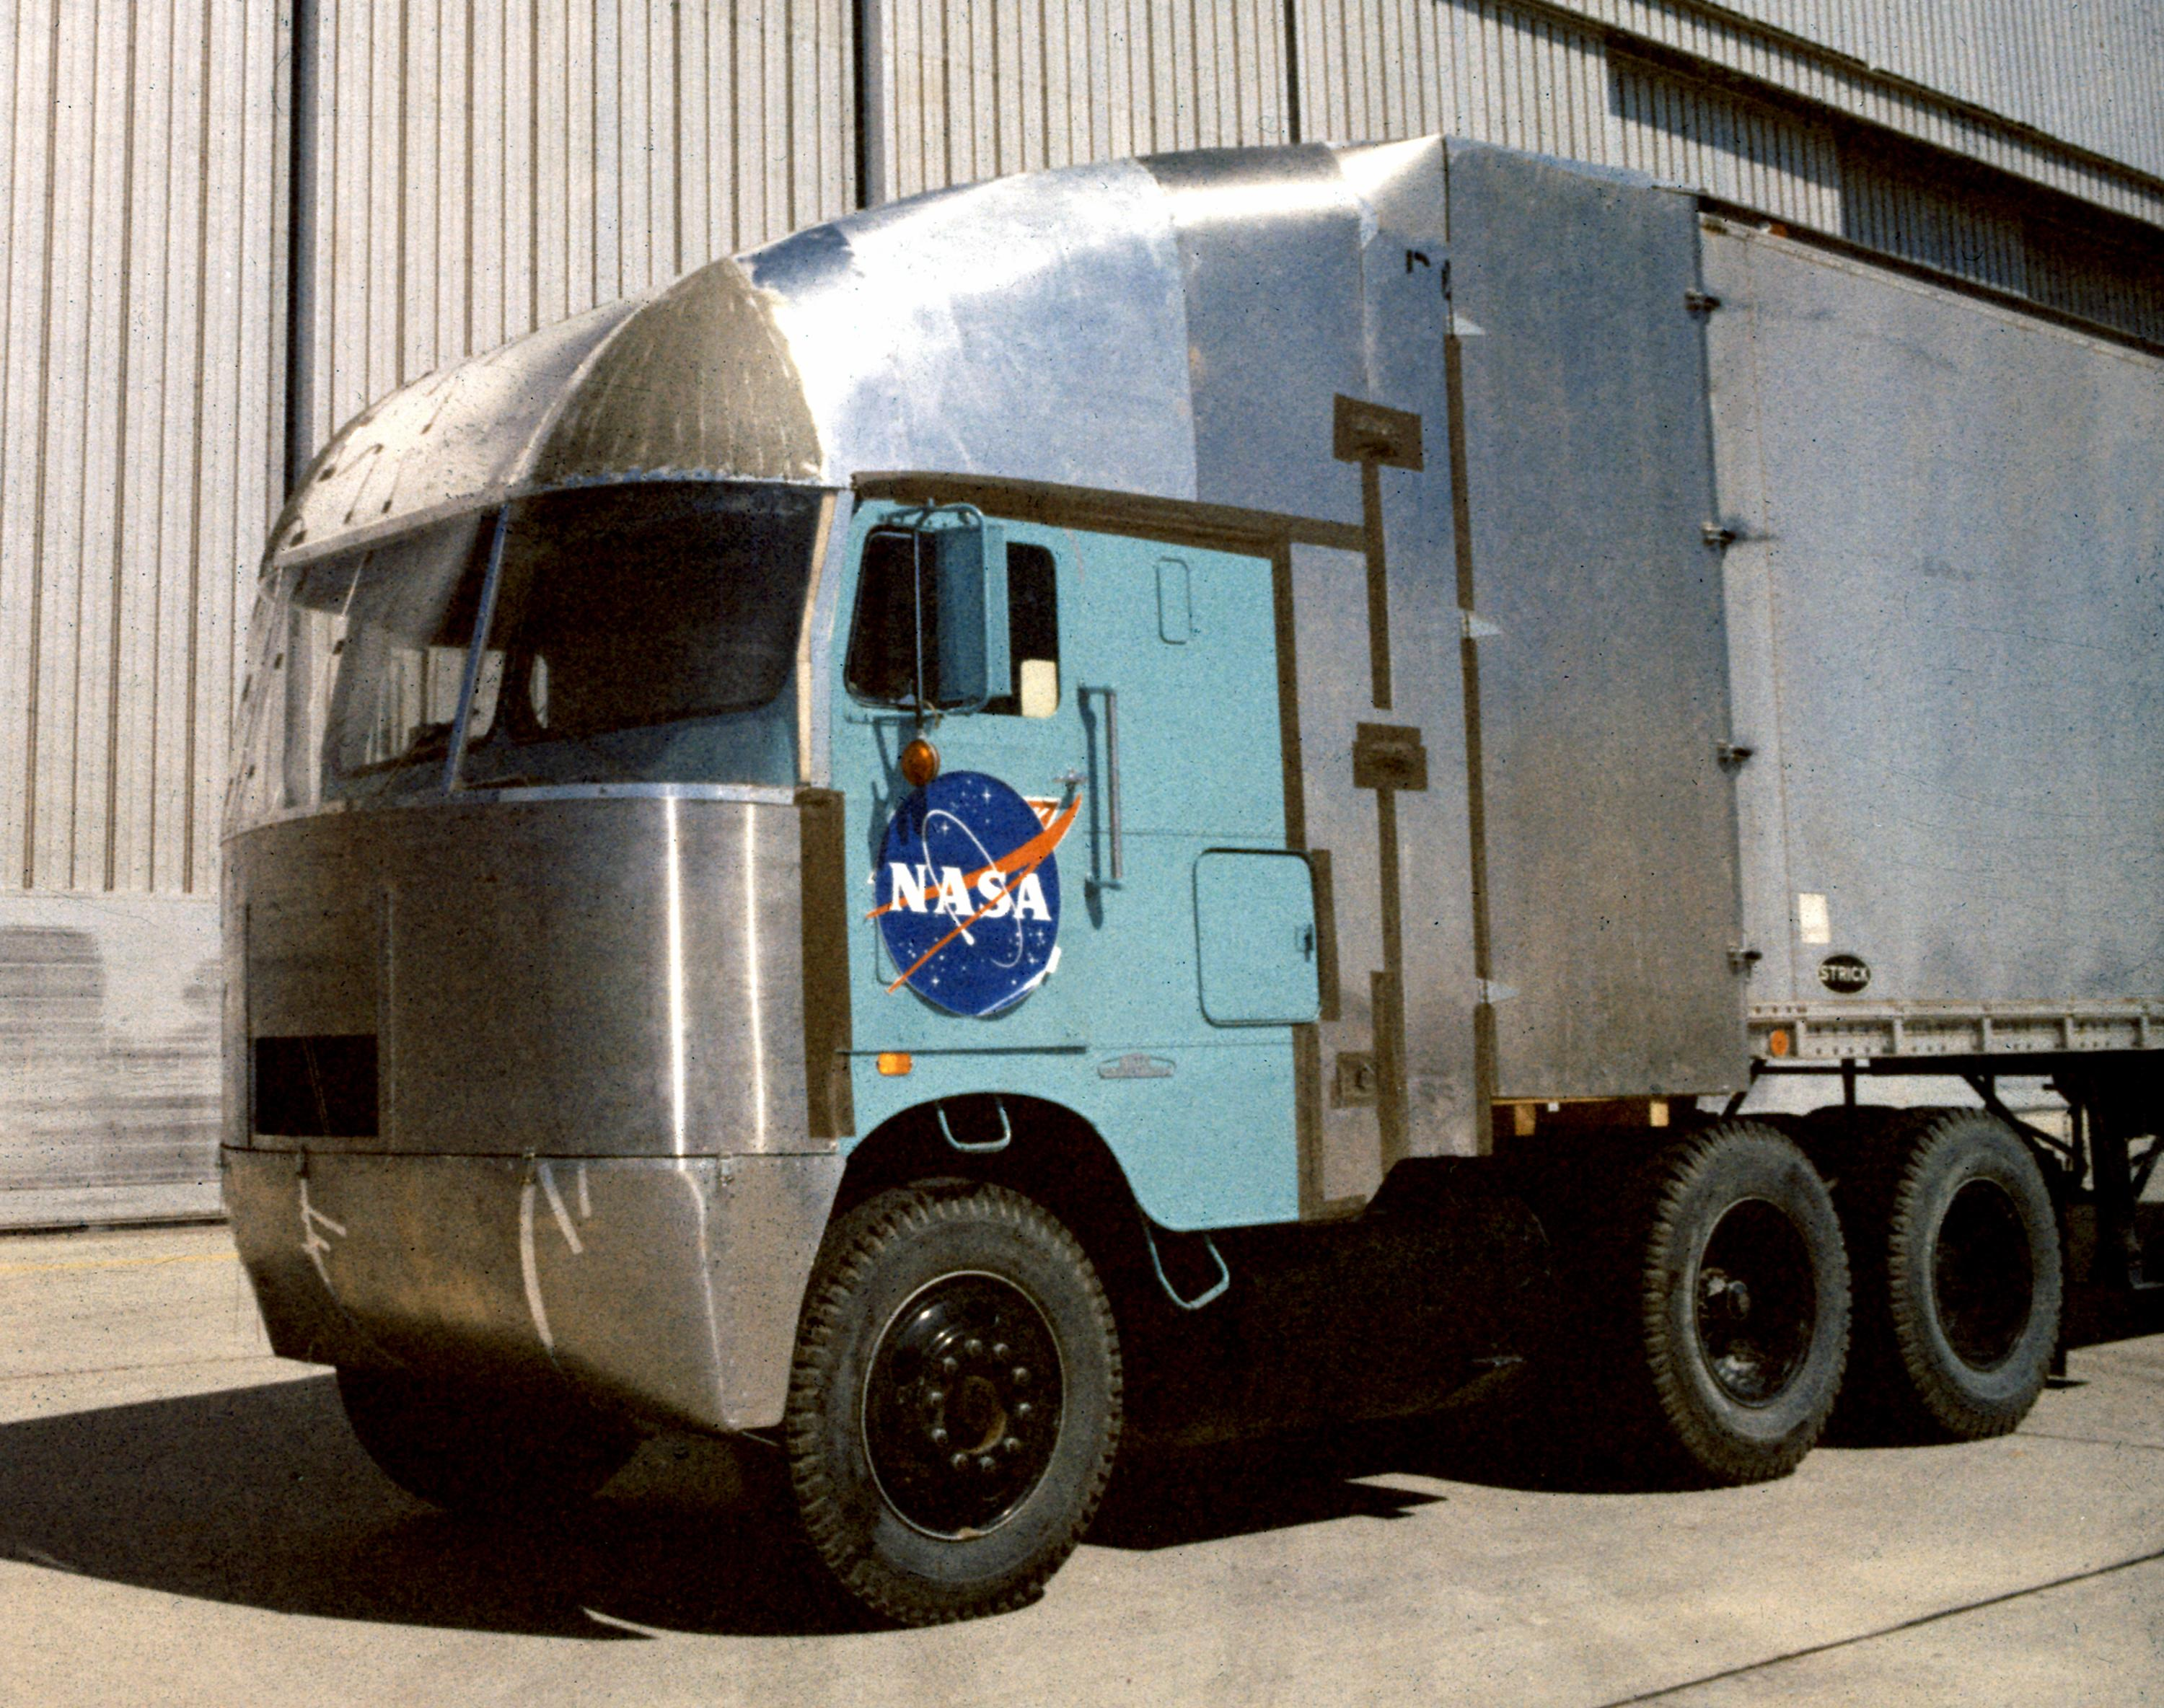 Aerodynamic Truck Research Image Gallery | NASA